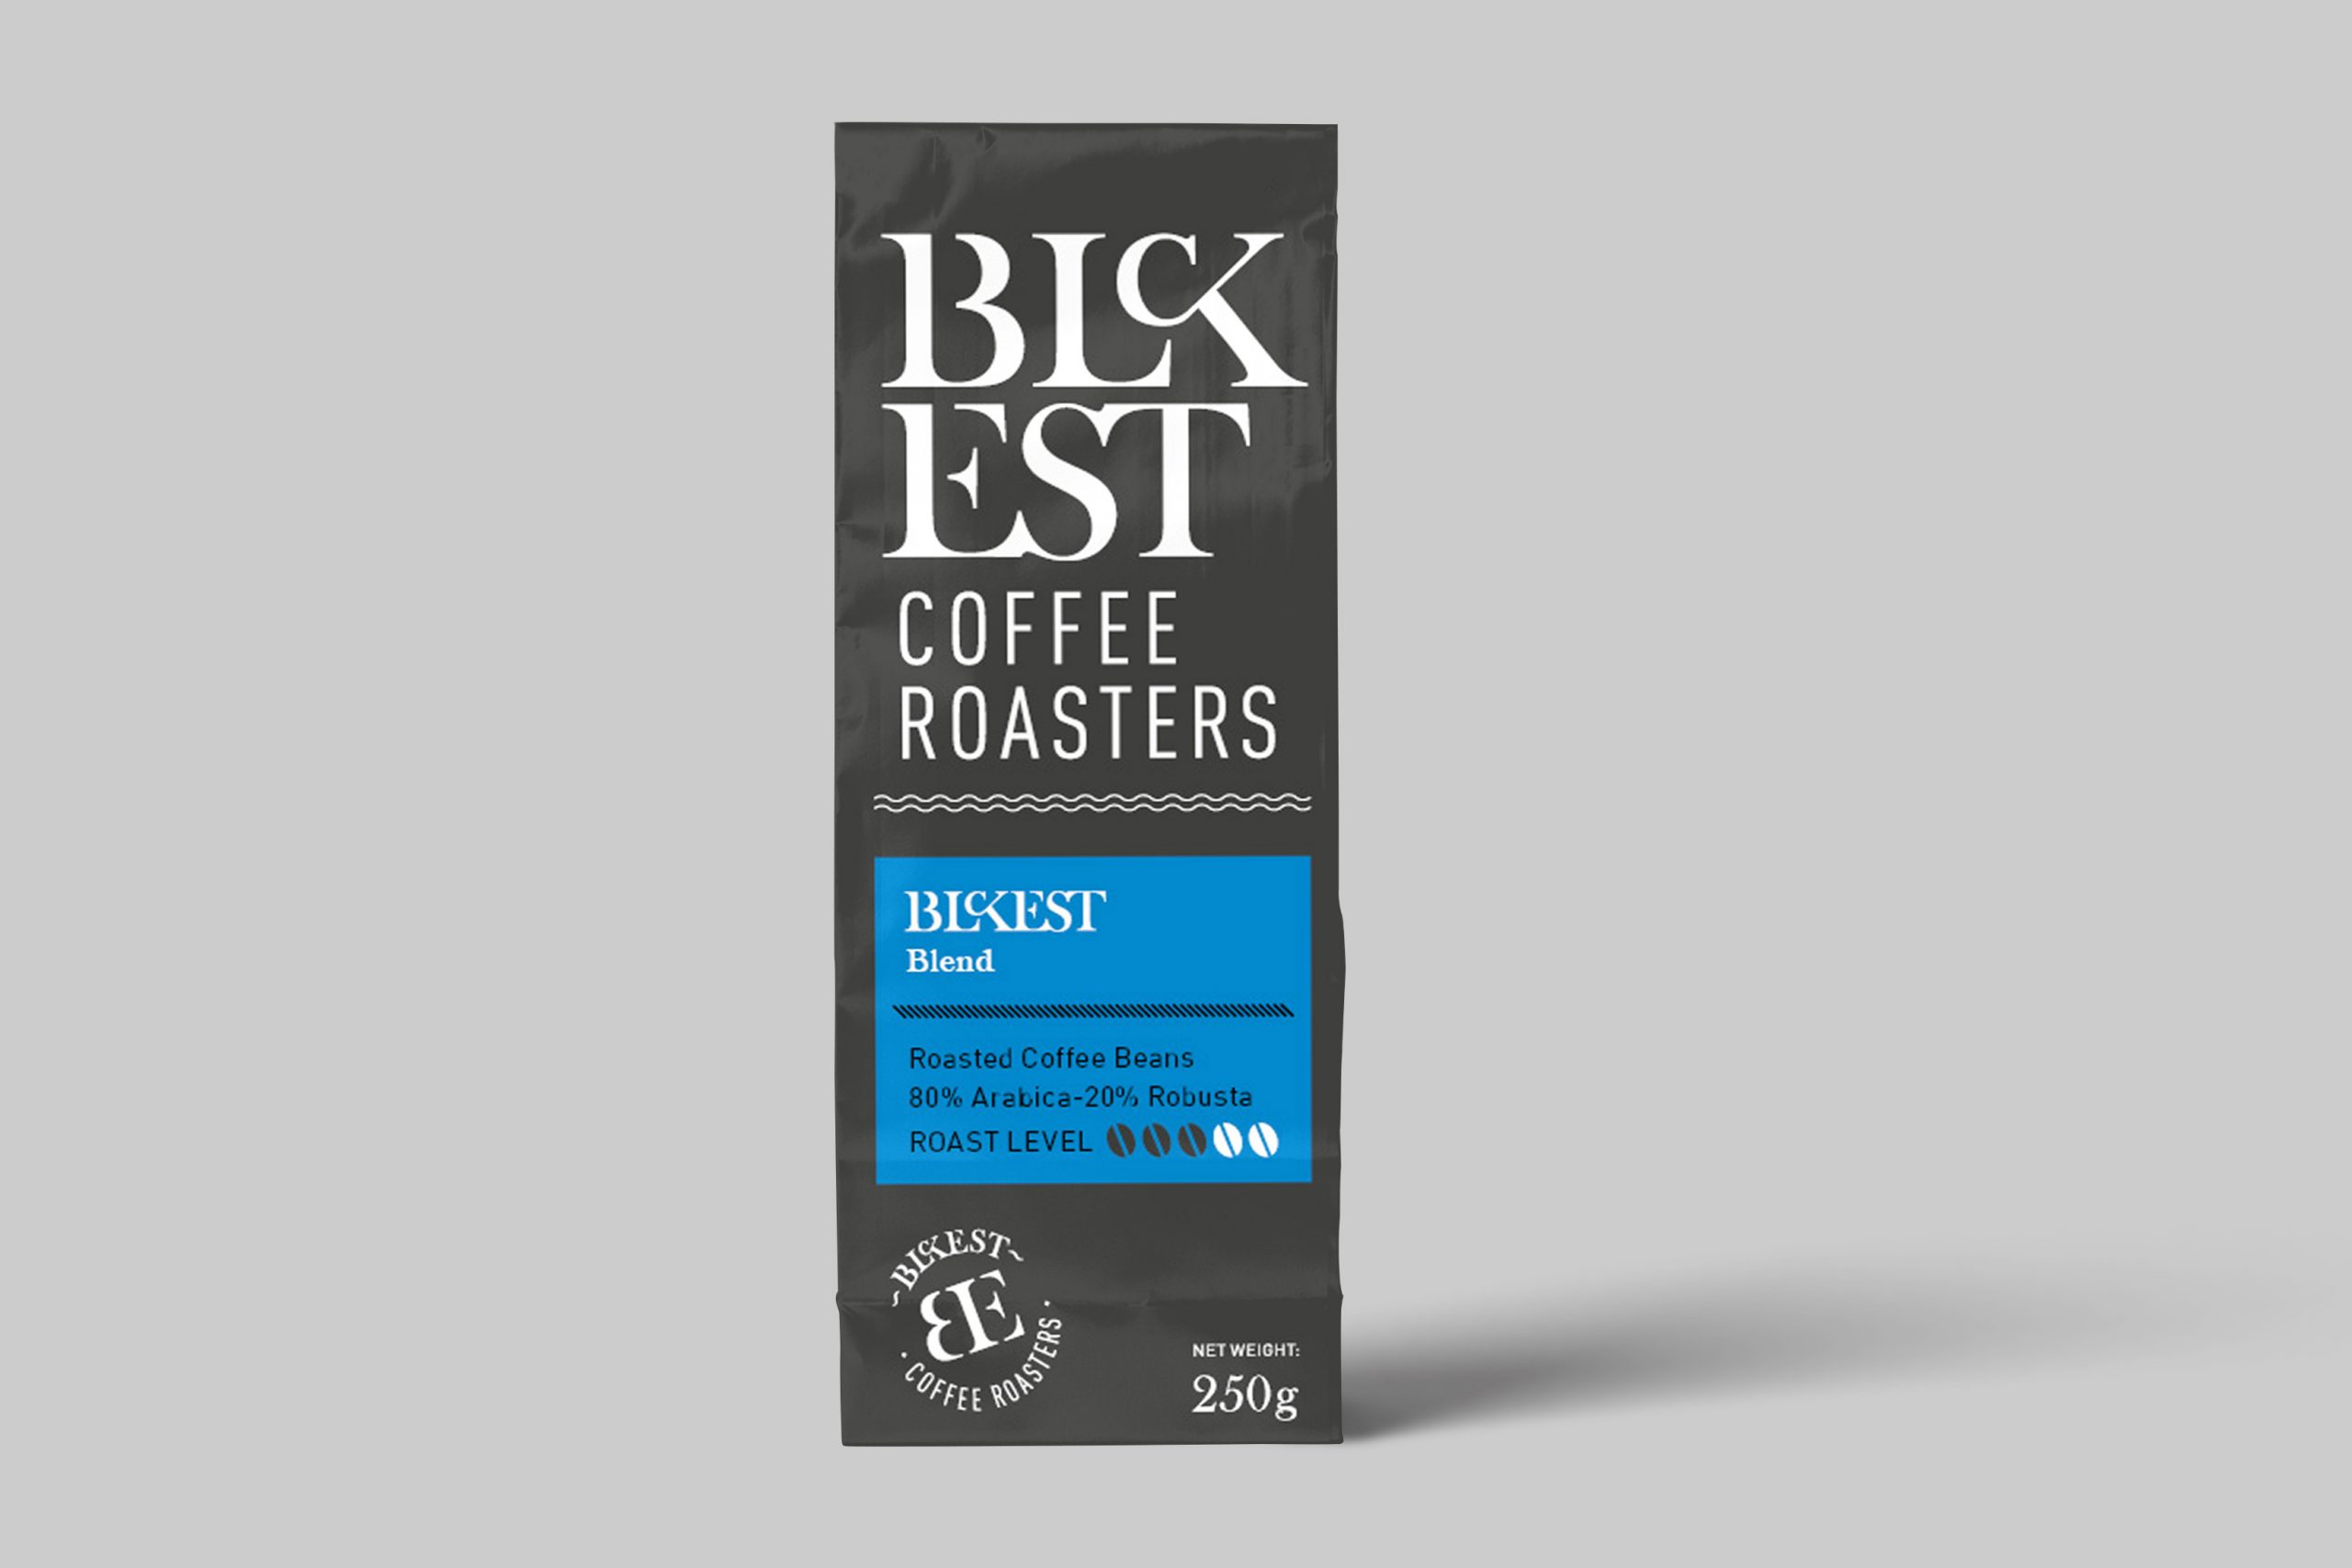 BLCKEST Blend Coffee (80% Arabica - 20% Robusta)